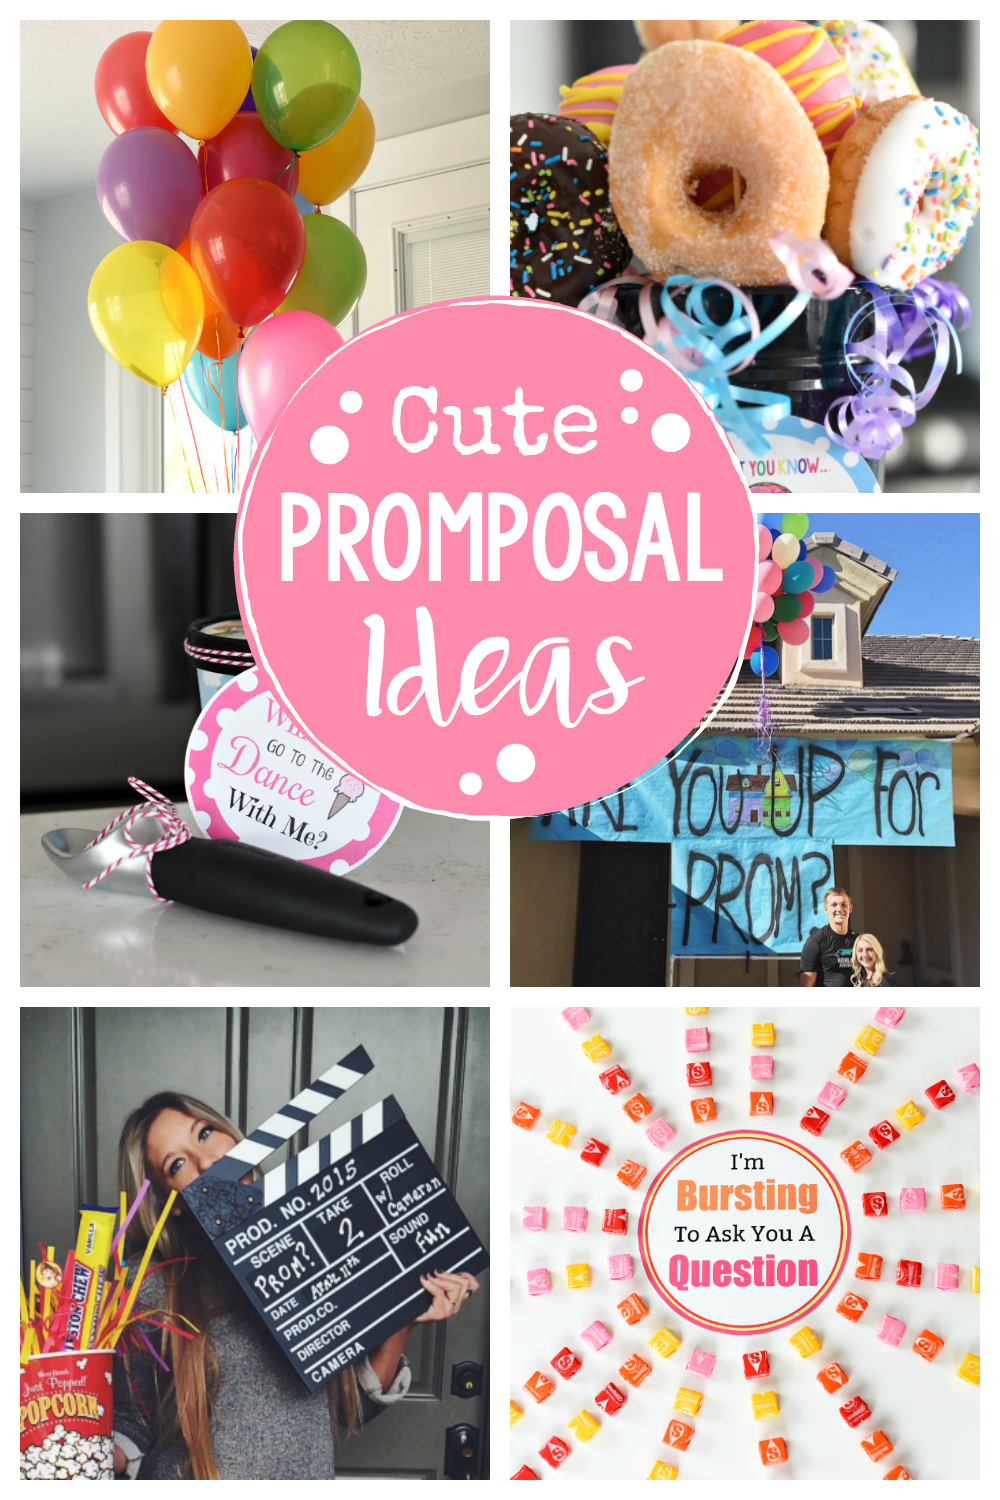 Cute Promposal Ideas-These are fun ways to ask someone to Homecoming, Prom or another dance. These promposals are simple, creative and fun! #homecoming #promposal #prom #dance